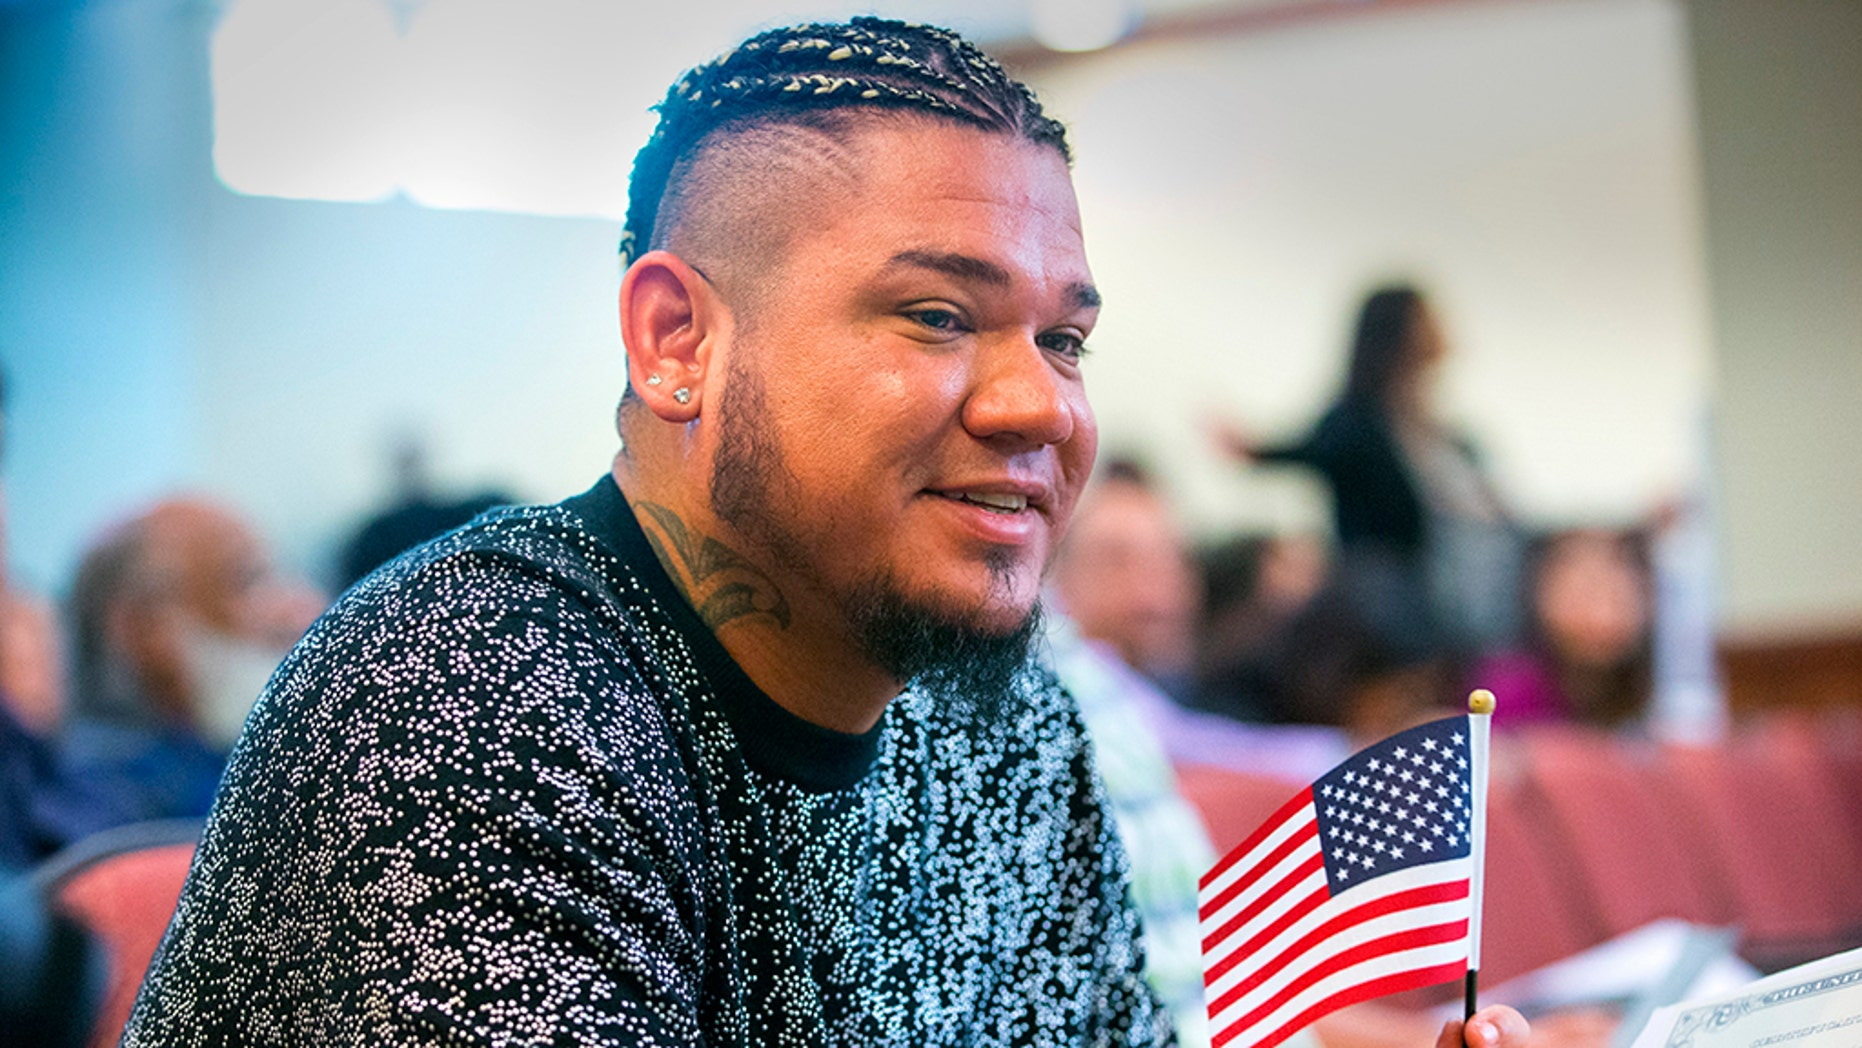 Seattle Mariners pitcher Felix Hernandez was sworn in as a U.S. citizen at the U.S. Citizenship and Immigration Services Field office in Tukwila, Wash., on Monday.